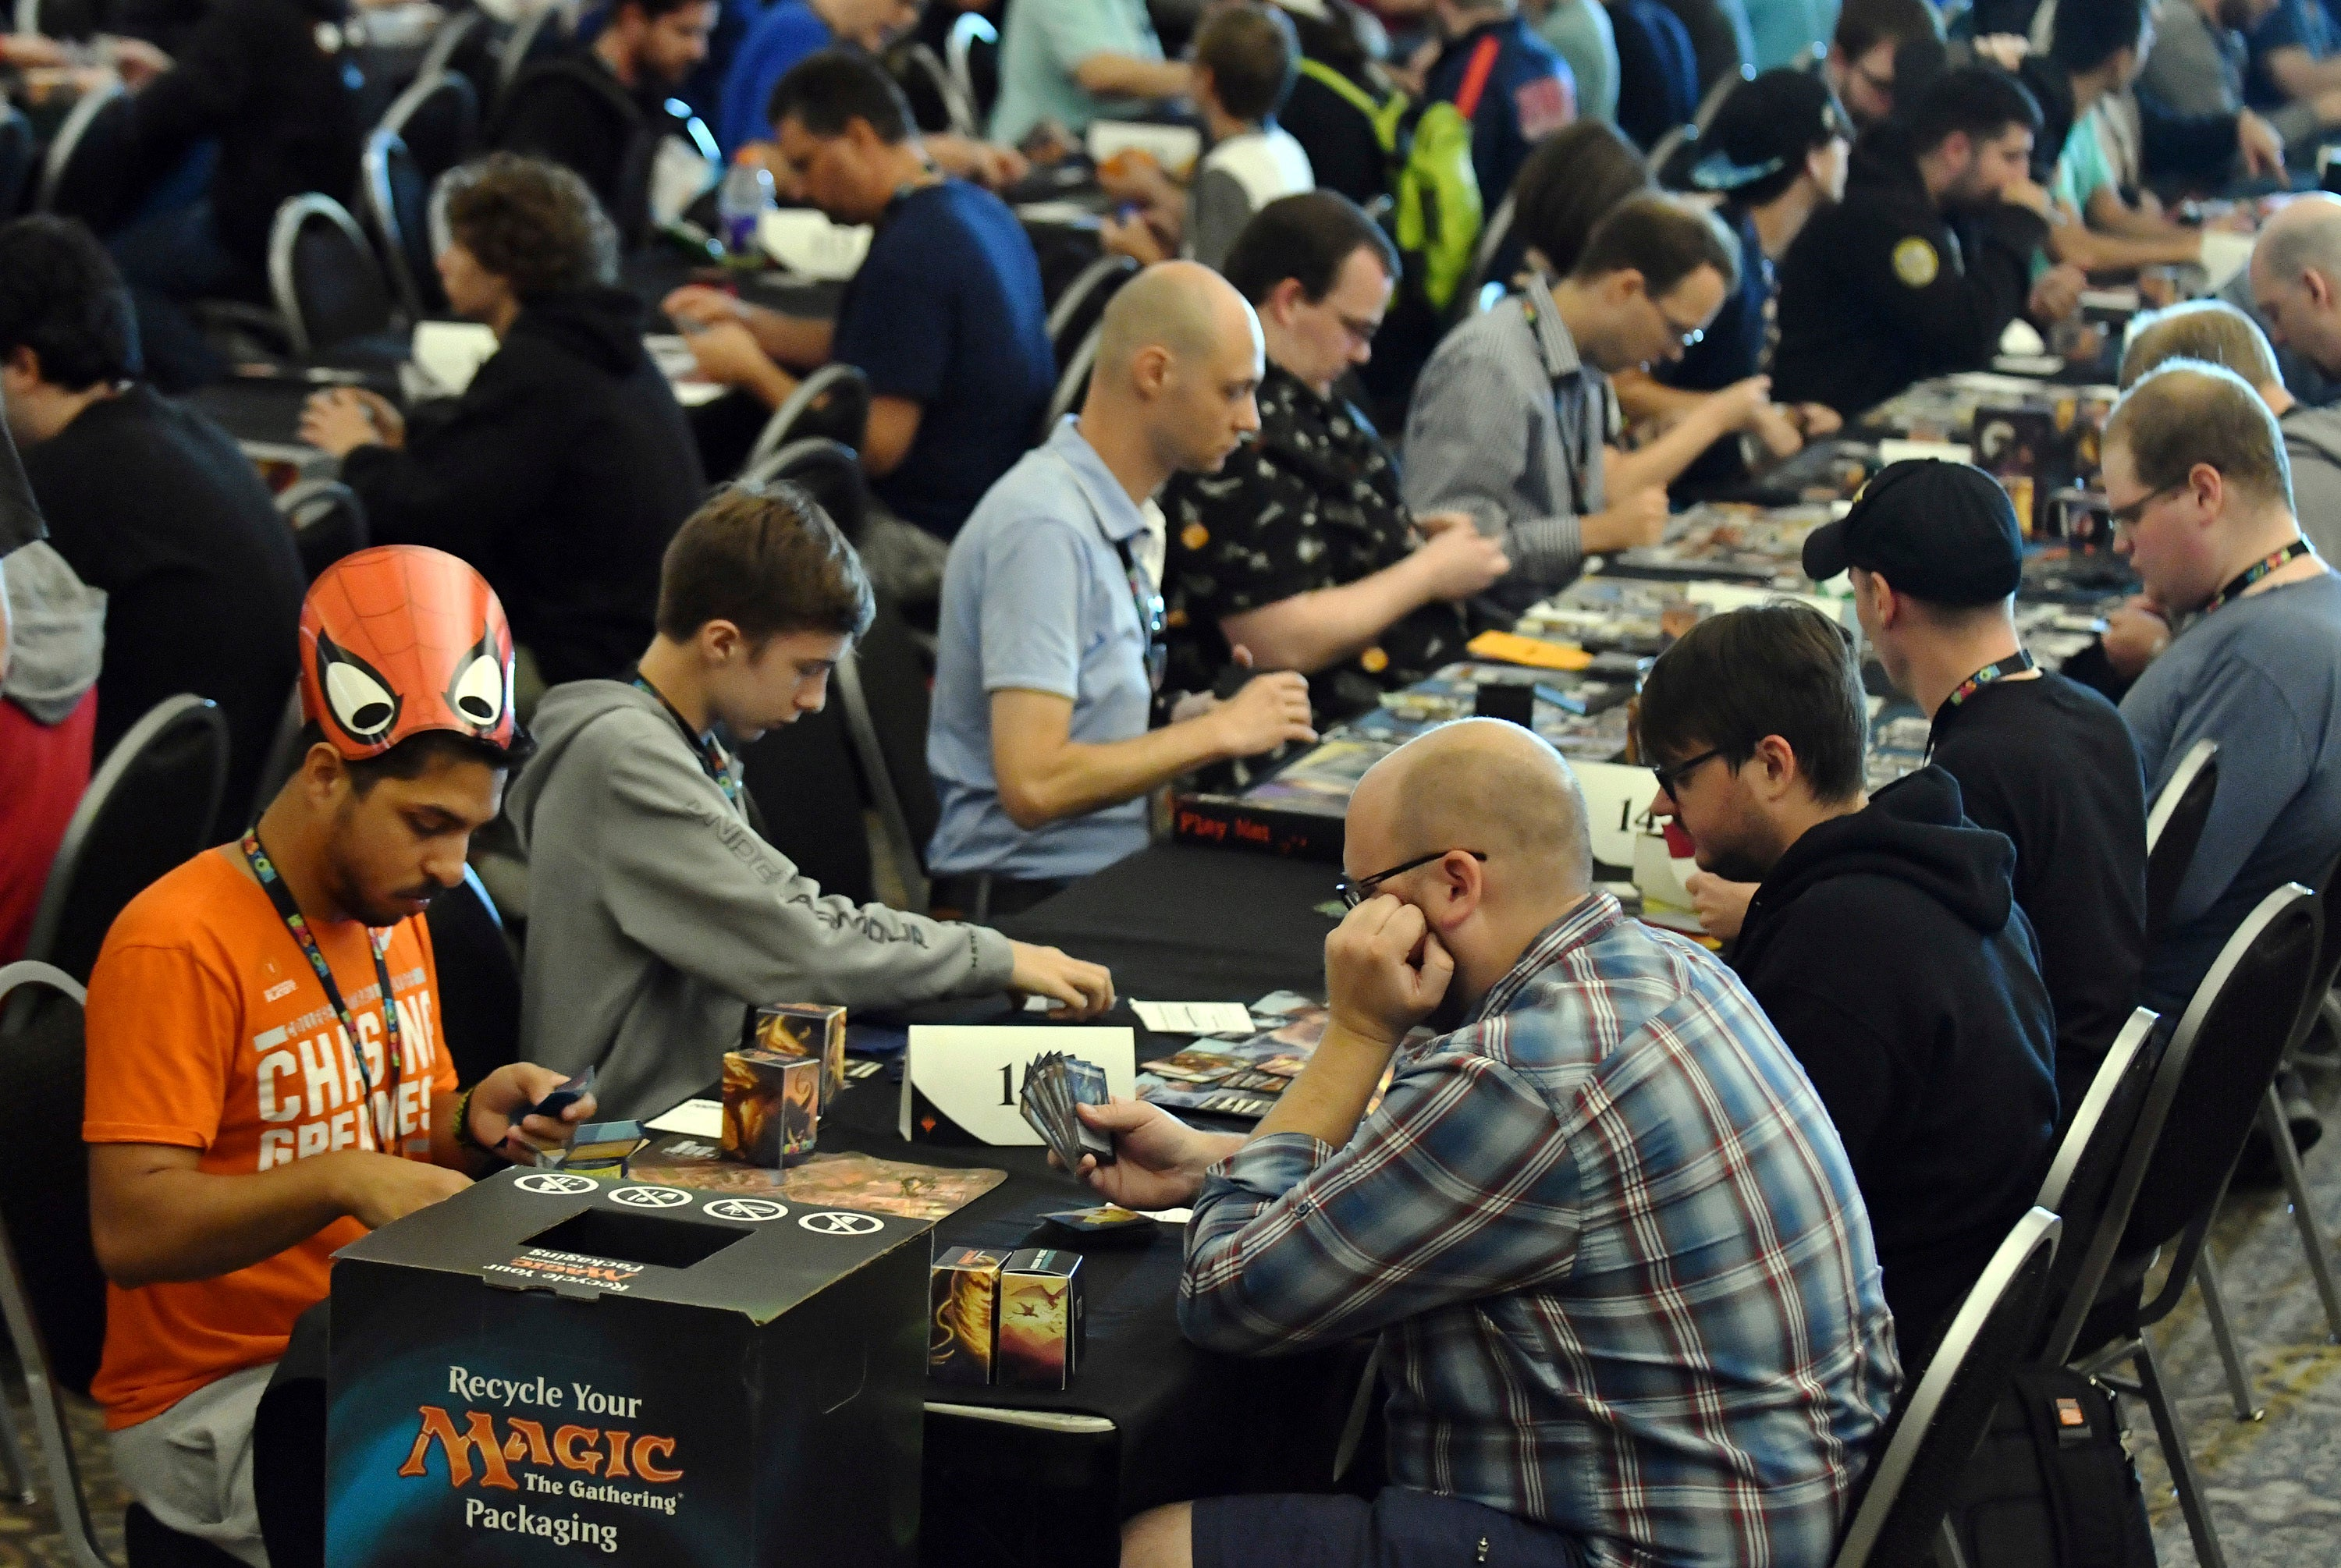 The Makers Of Magic: The Gathering Say They're Trying To Make It Less Of A Boys Club